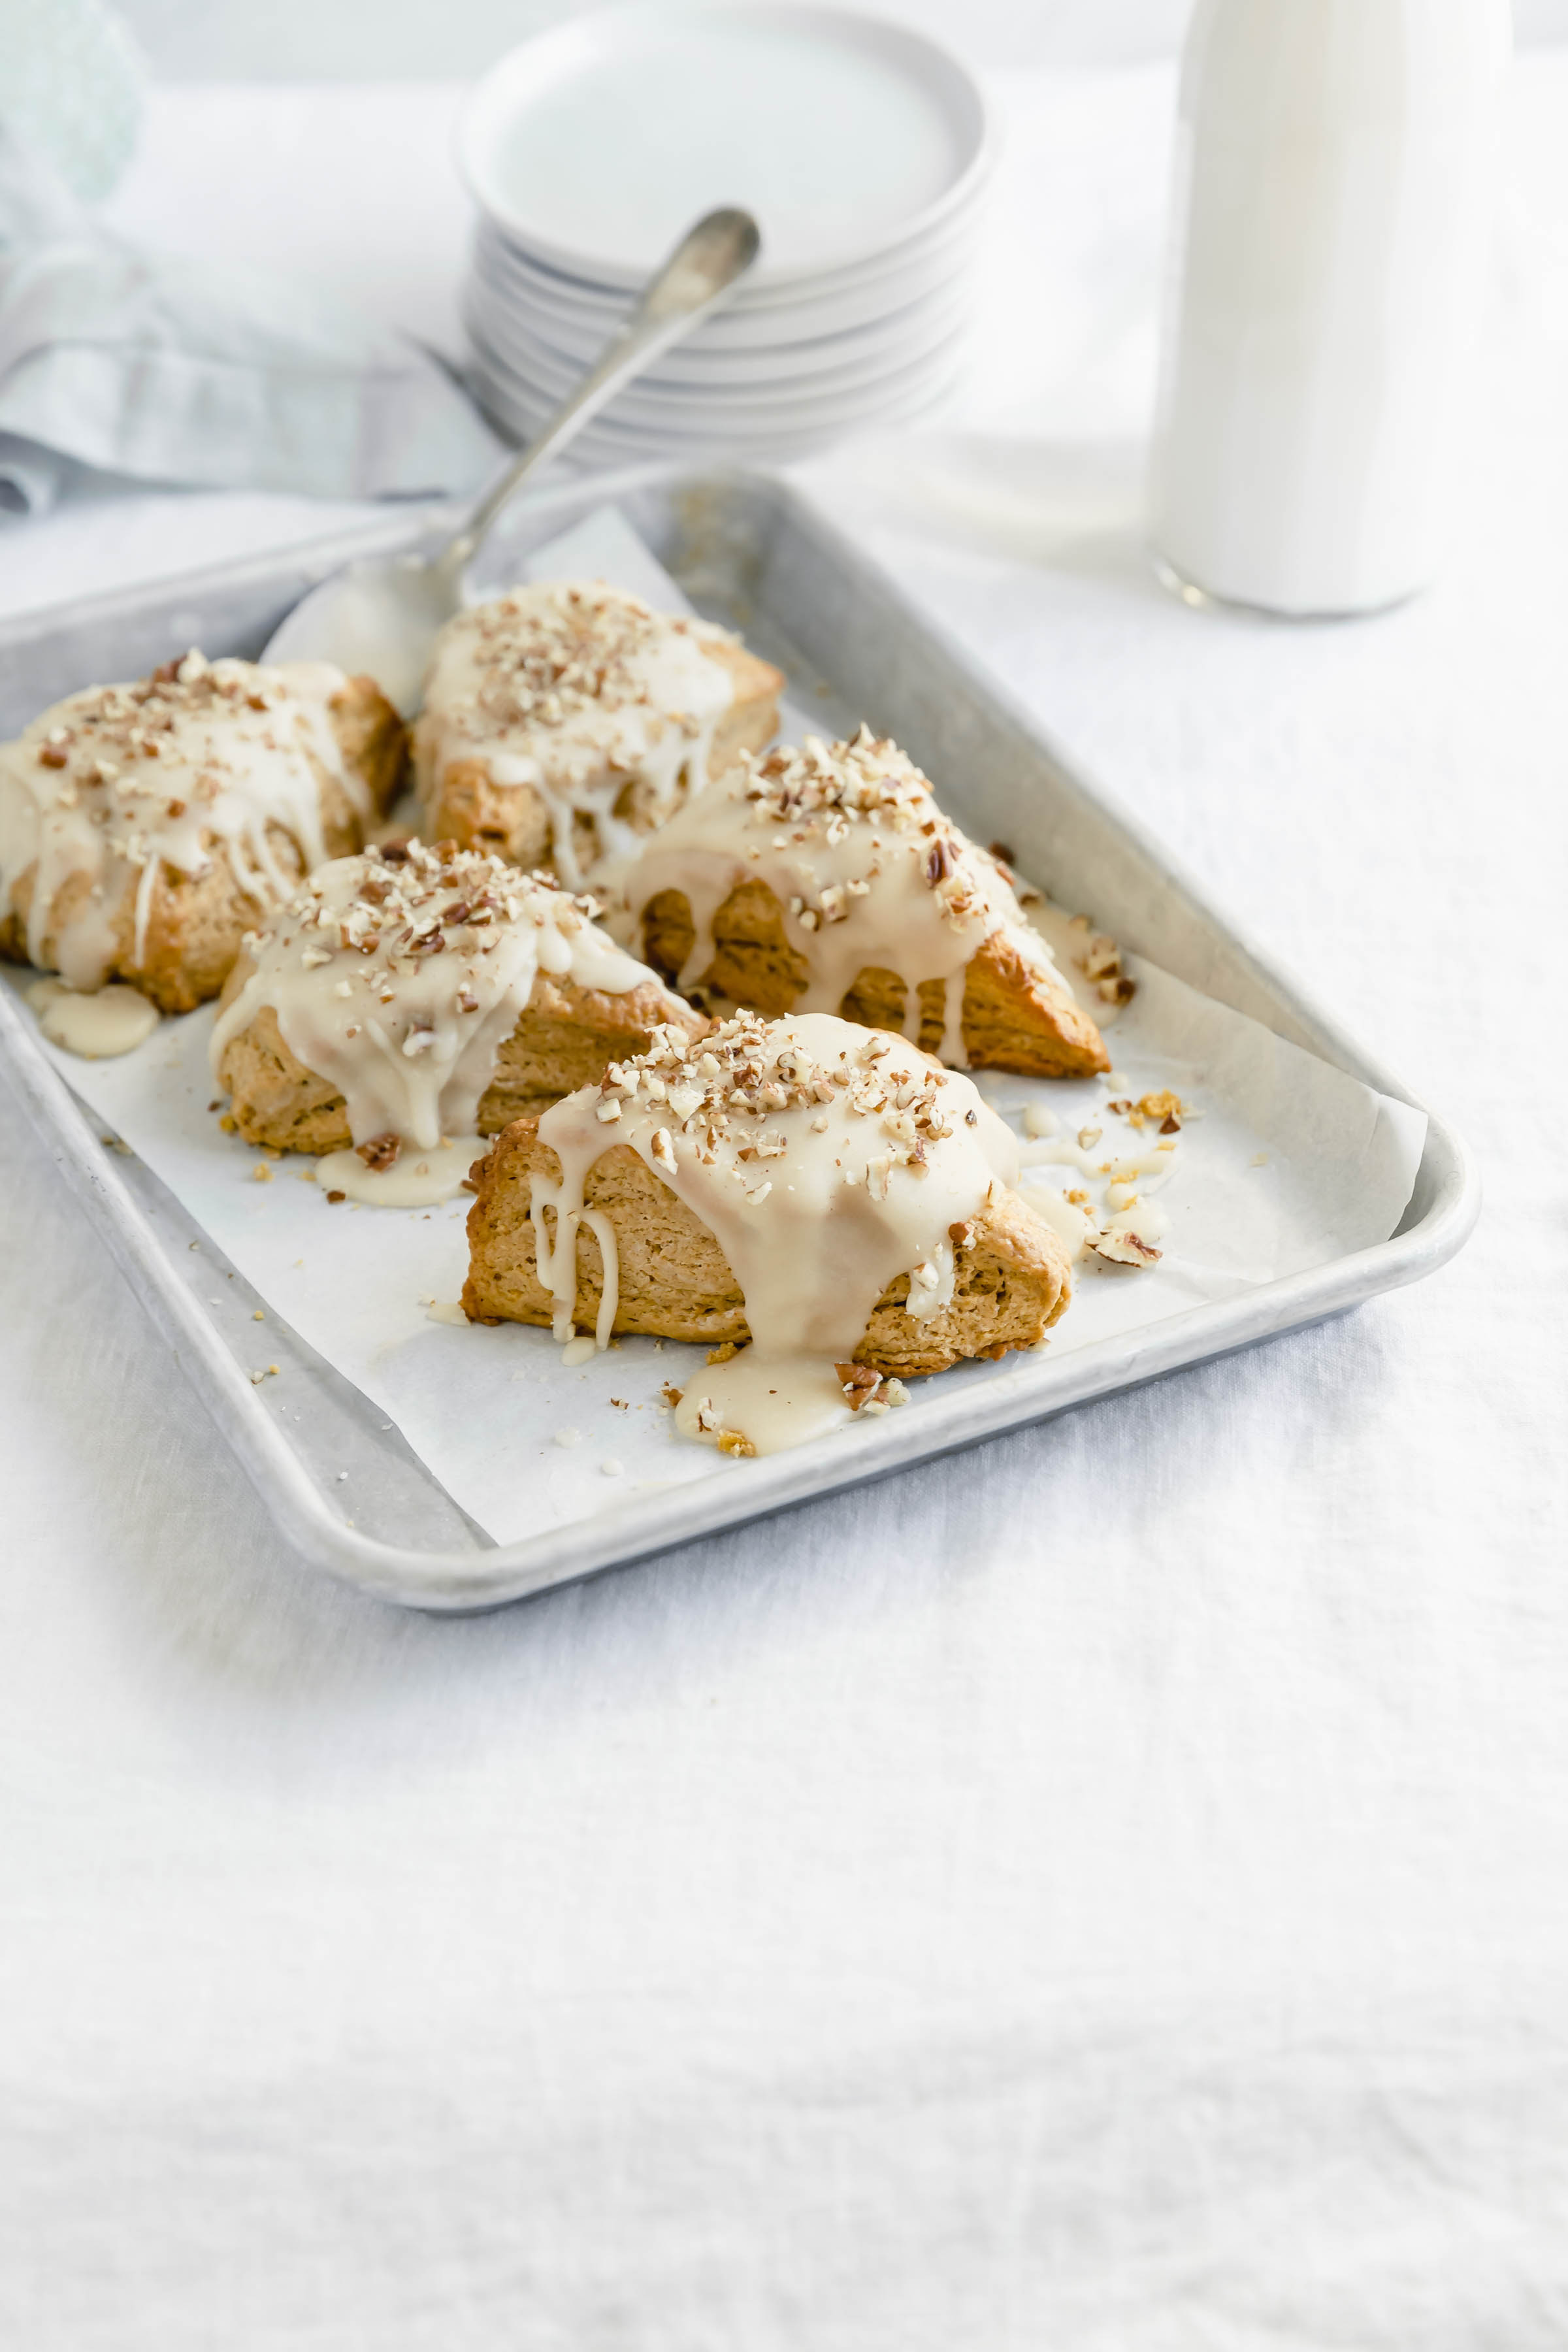 this pumpkin scone recipe for the moist and delicious scones you'll ever have!